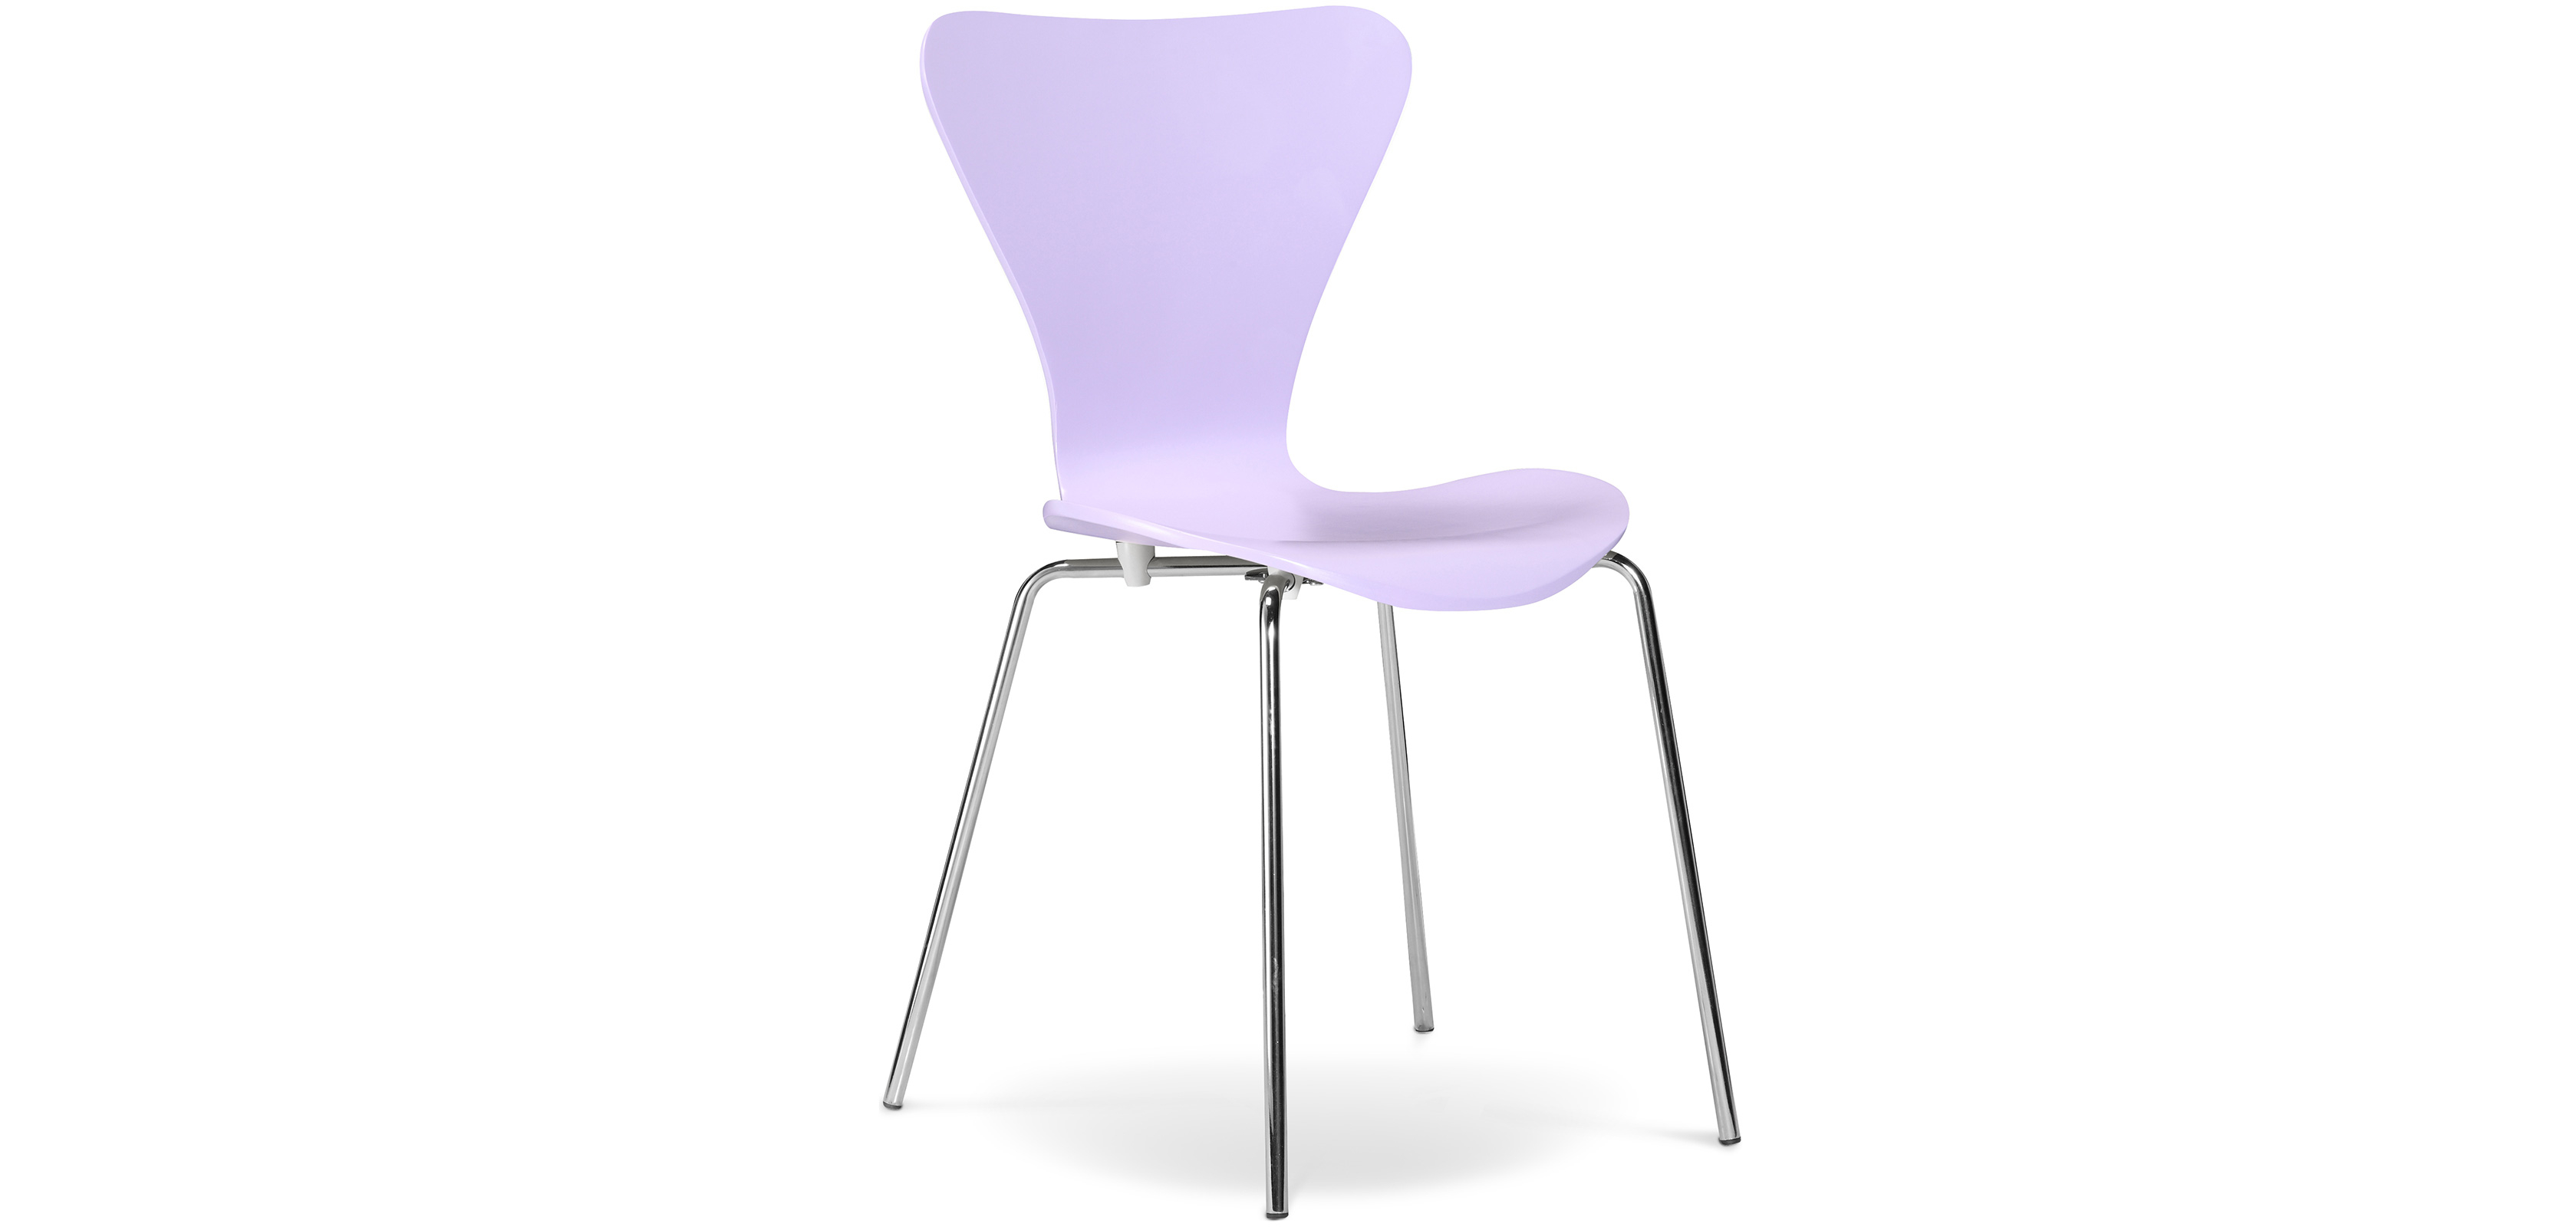 Buy Series 7 dining chair Arne Jacobsen - Wood - Style Mauve 13143 - in the UK